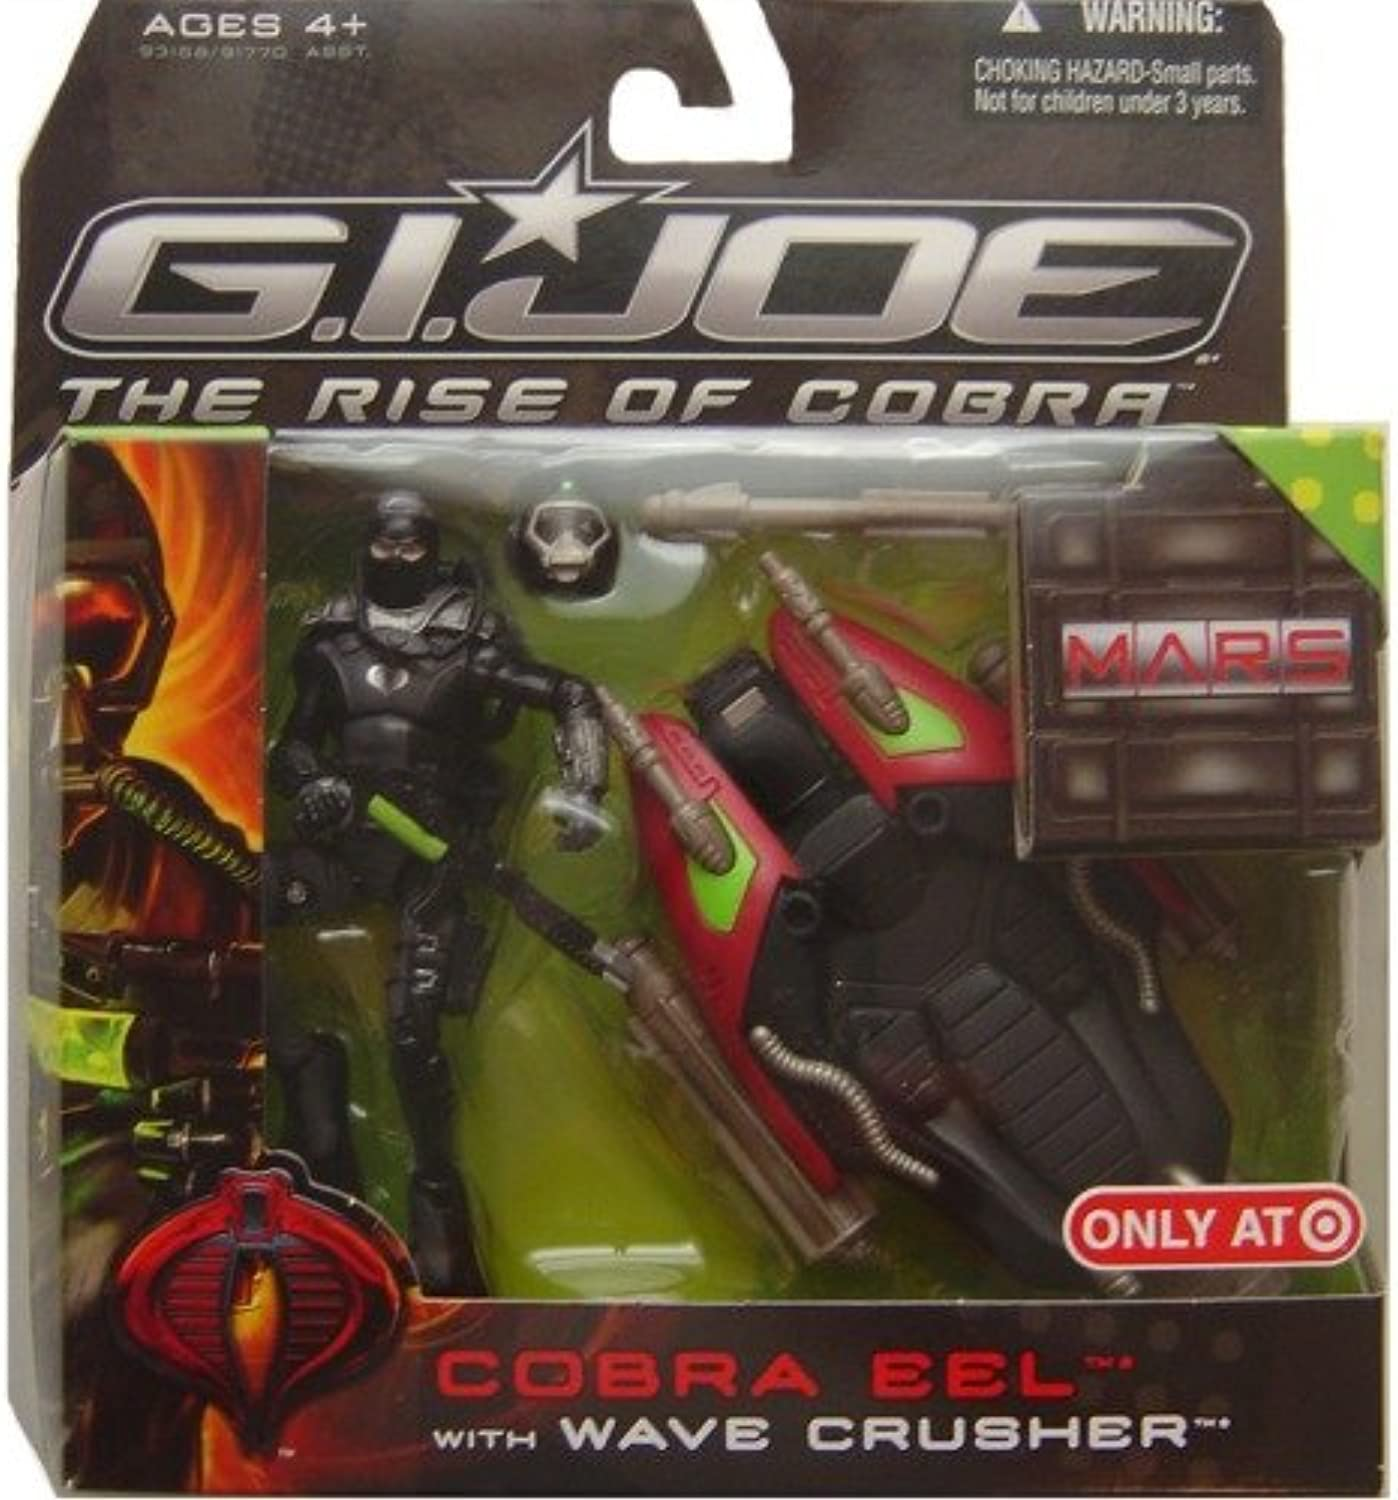 G.I. Joe Movie The Rise of Cobra Exclusive M.A.R.S. Troopers Action Figure Cobra Eel with Wave Crusher